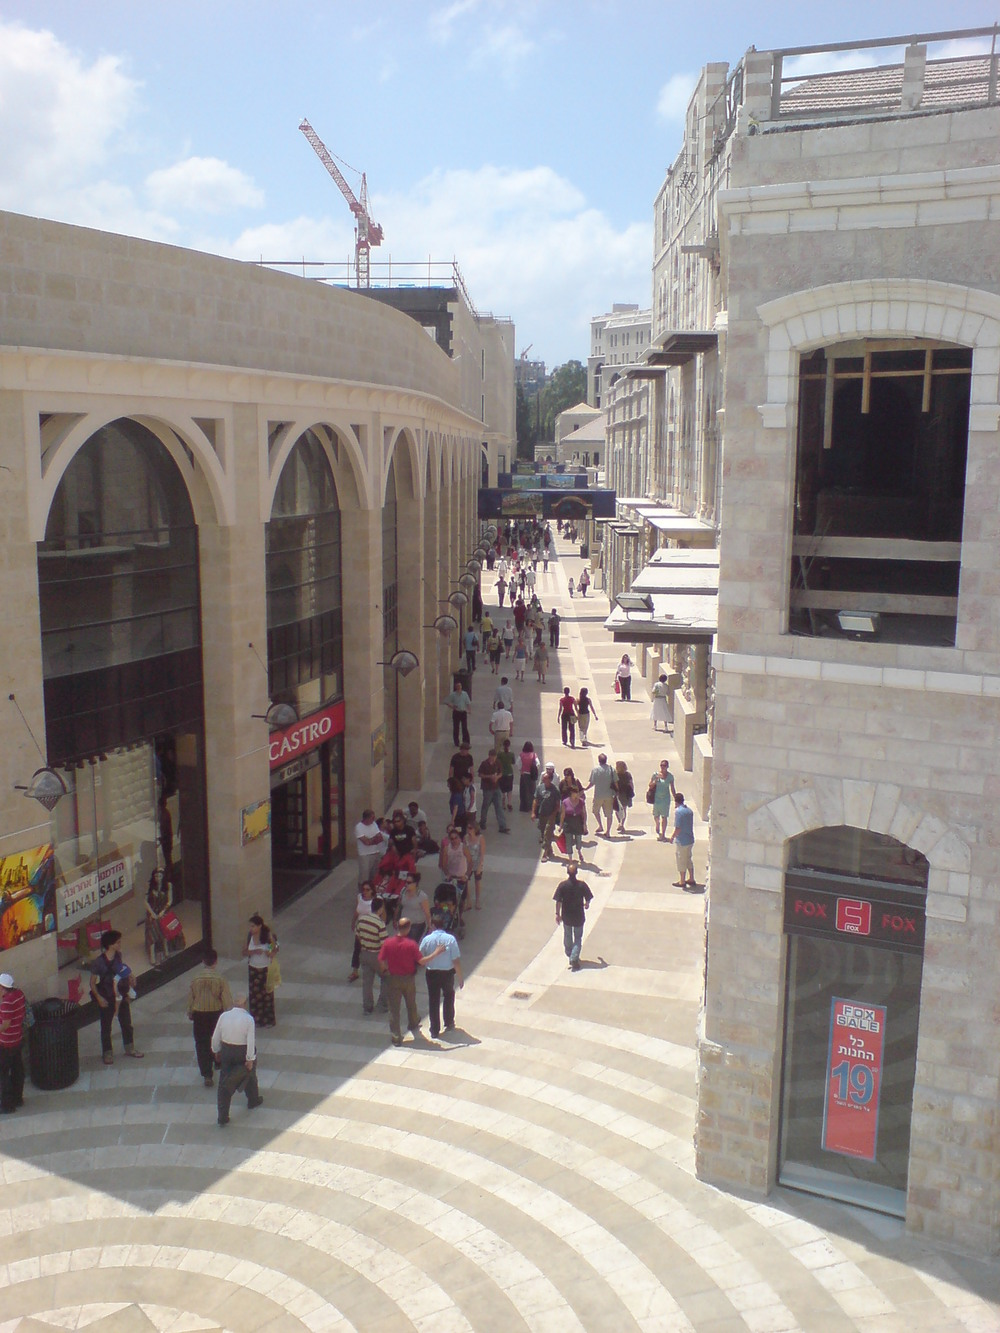 The Mamilla shopping center of Jerusalem. Credit: Wikimedia Commons.